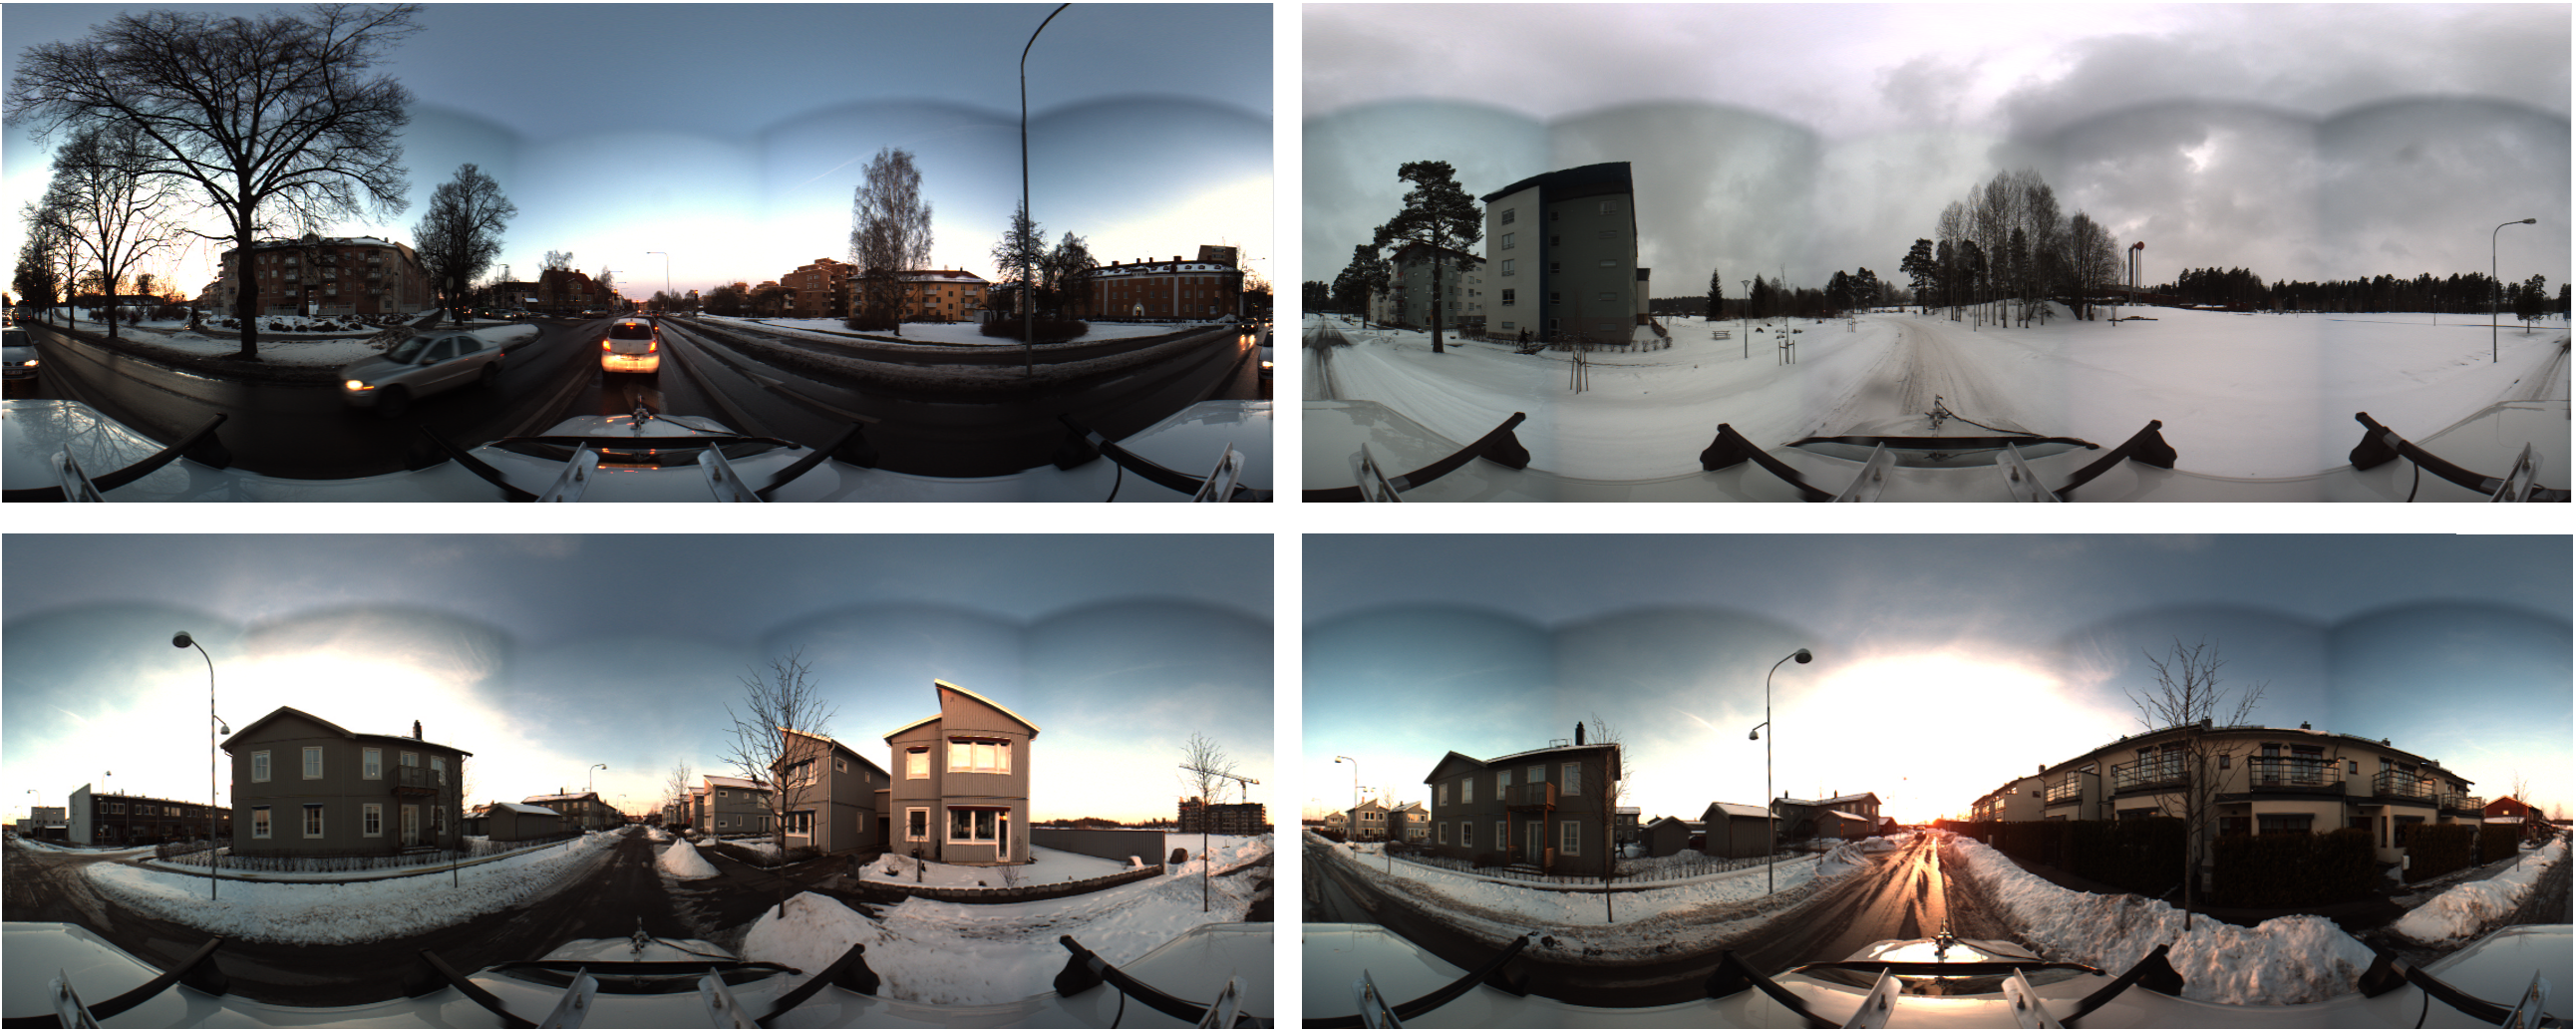 Scenes with different traffic and weather conditions as stitched and clipped panoramic images